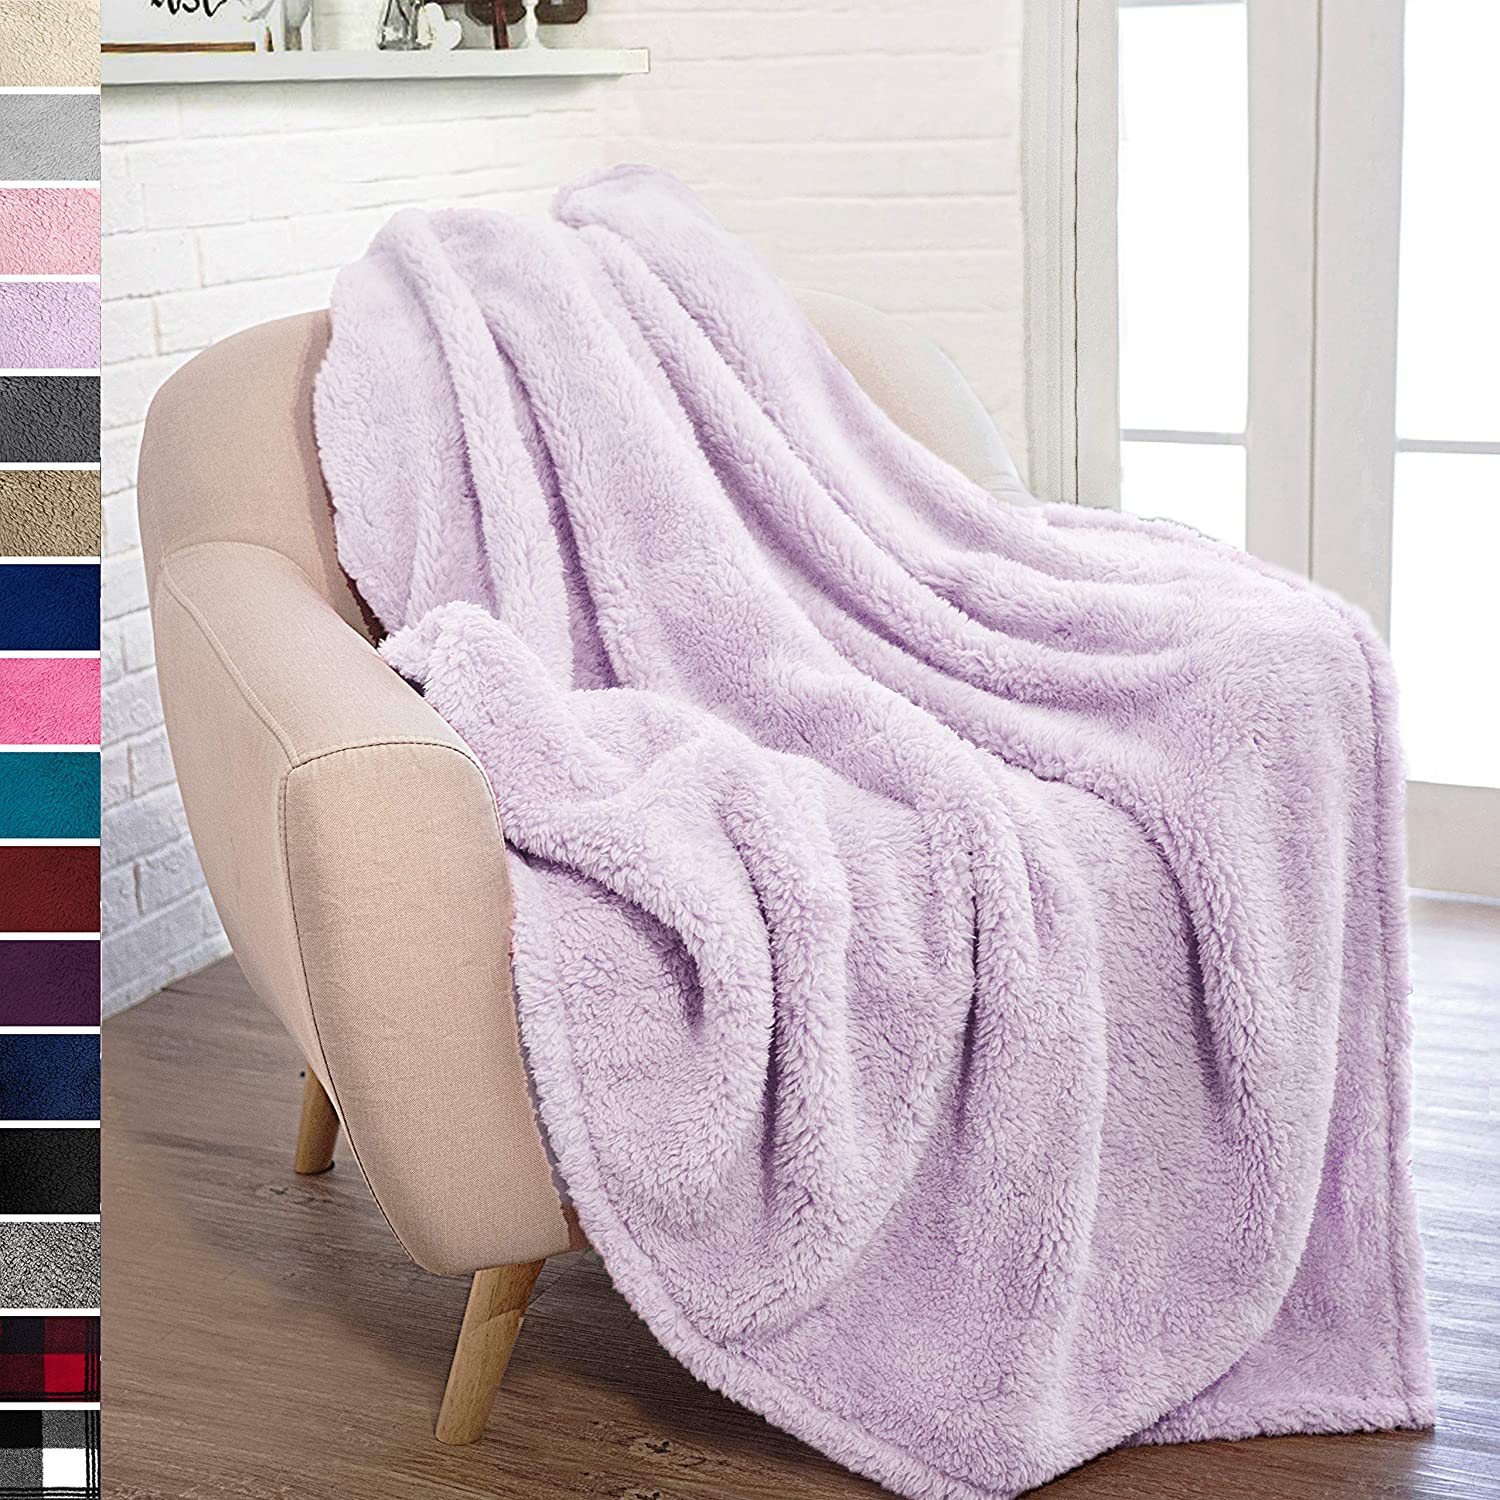 PAVILIA Plush Sherpa Throw Blanket for Couch Sofa | Fluffy Microfiber Fleece Throw | Soft, Fuzzy, Cozy, Shaggy, Lightweight | Solid Lavender Blanket | 50 x 60 Inches